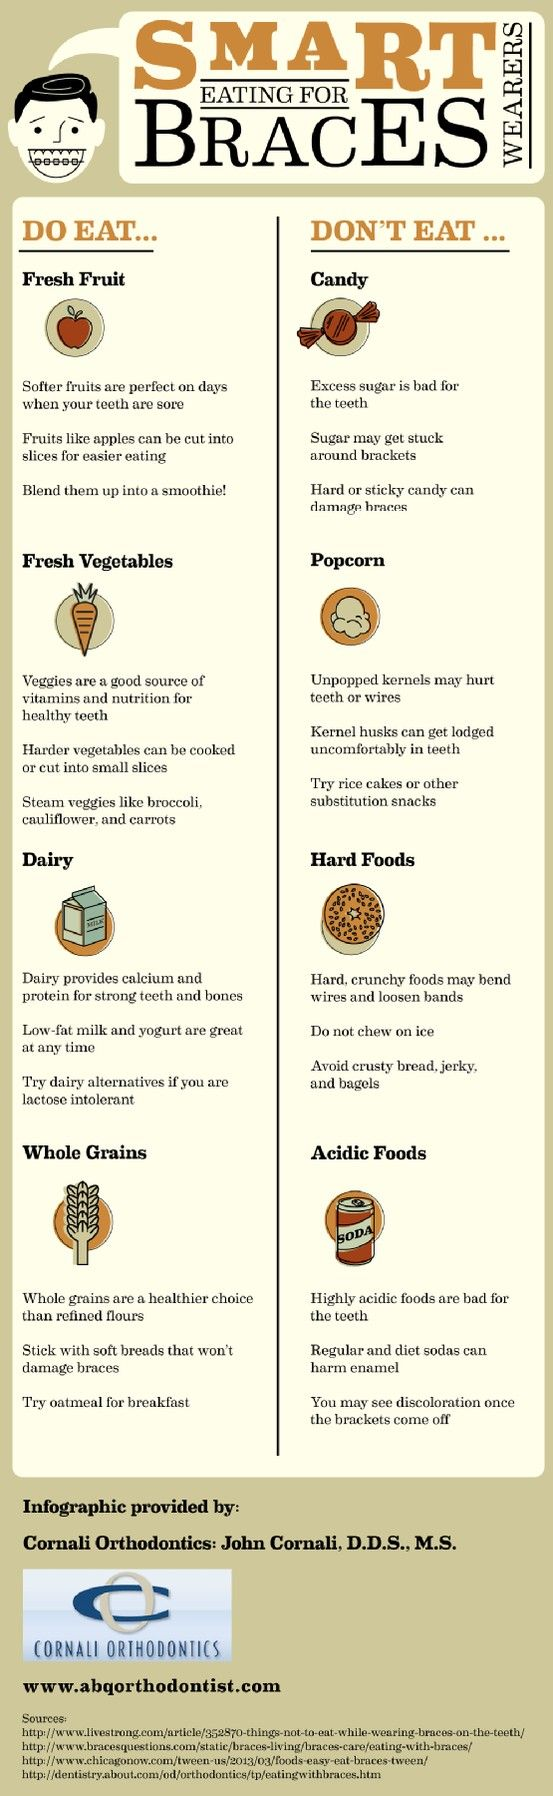 If you've just started orthodontic treatment, you're probably wondering what kinds of food are safe to eat while wearing braces. Candy and hard or crunchy foods can bend wires and loosen bands, so it's best to stick with soft, nutritious foods. Take a look at this infographic to learn more.